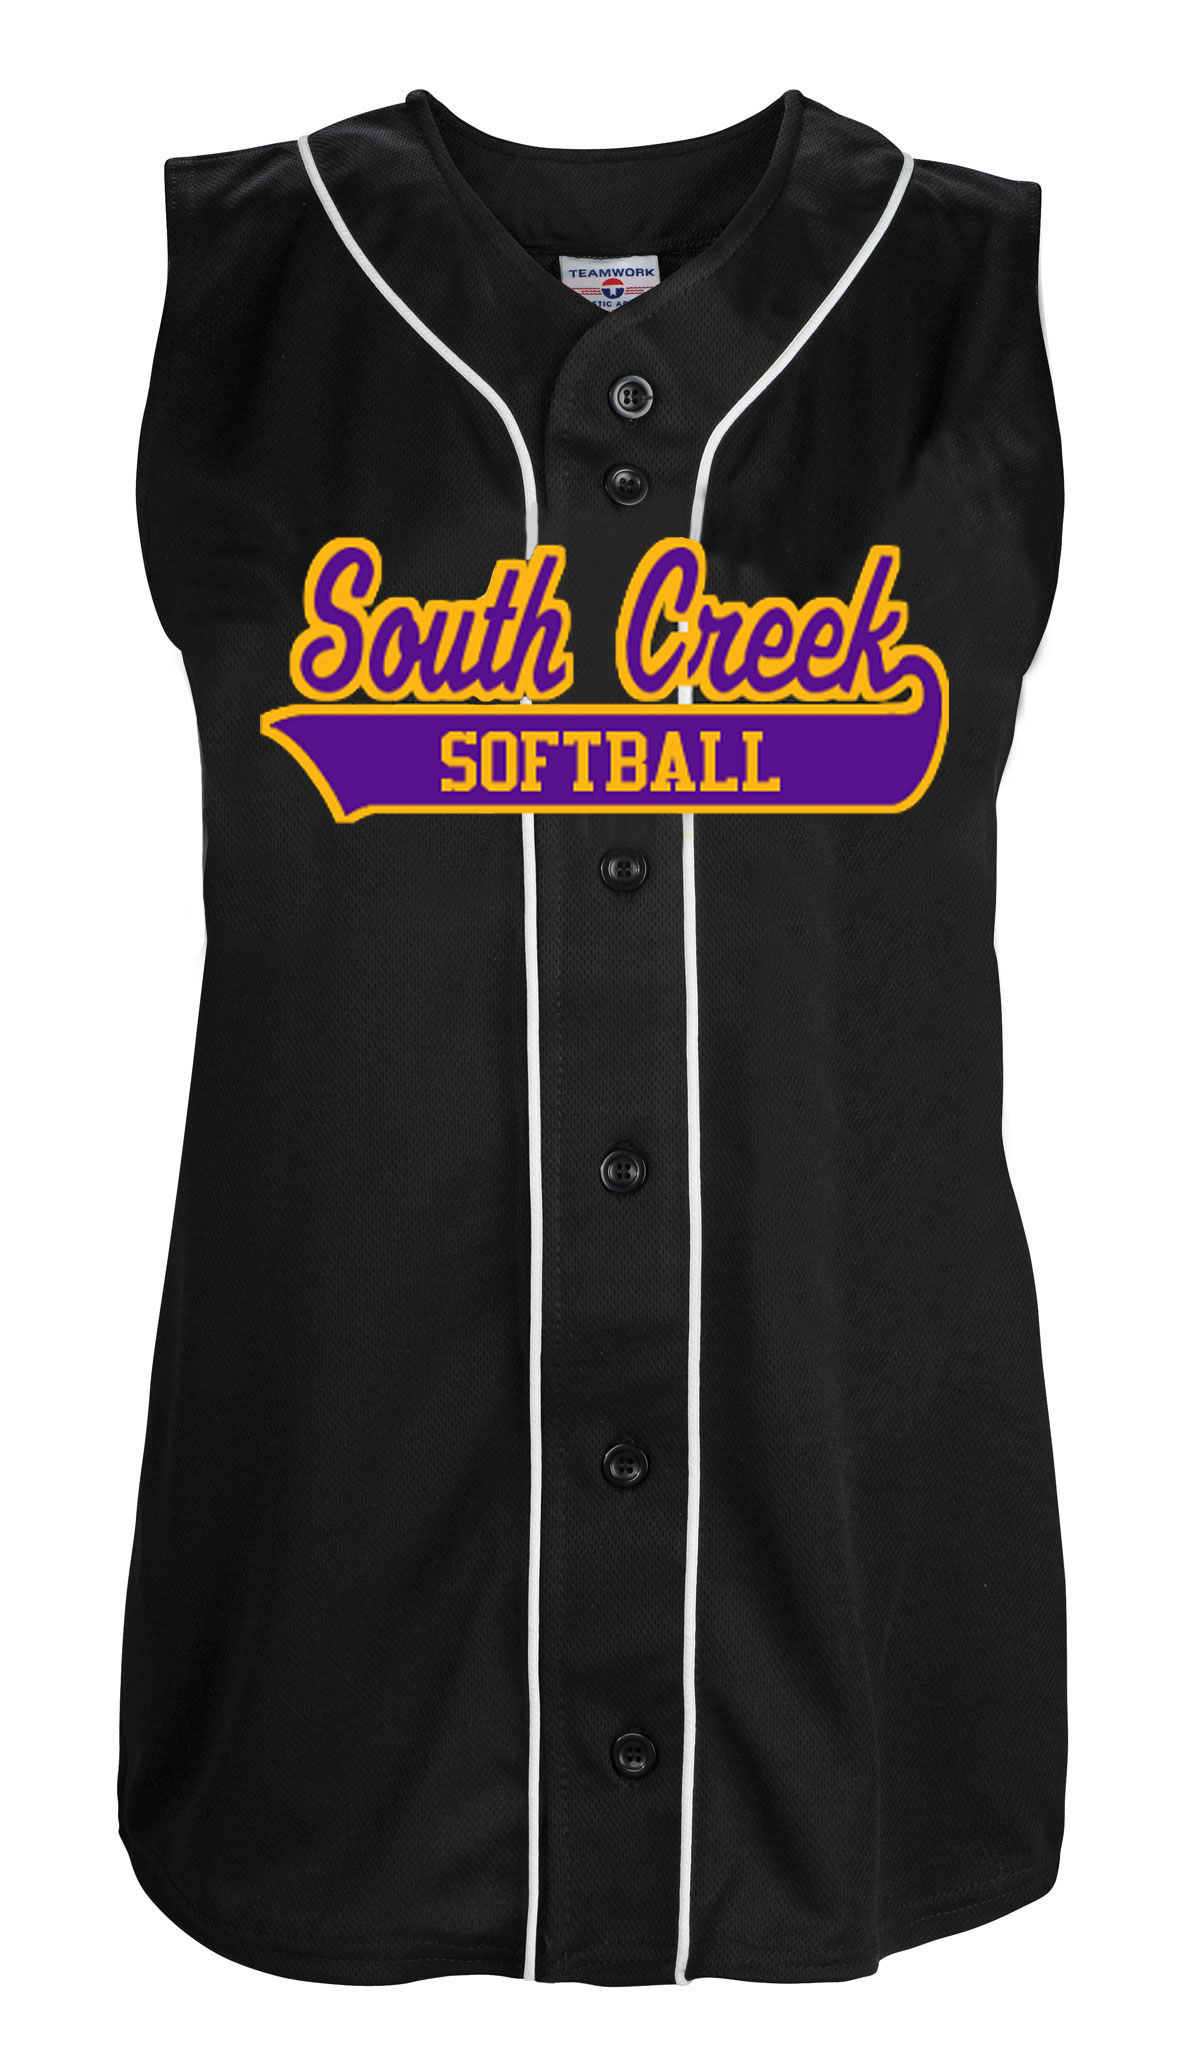 Teamwork Womens Tag Up Full Button Sleeveless Softball Jersey - CLOSEOUT